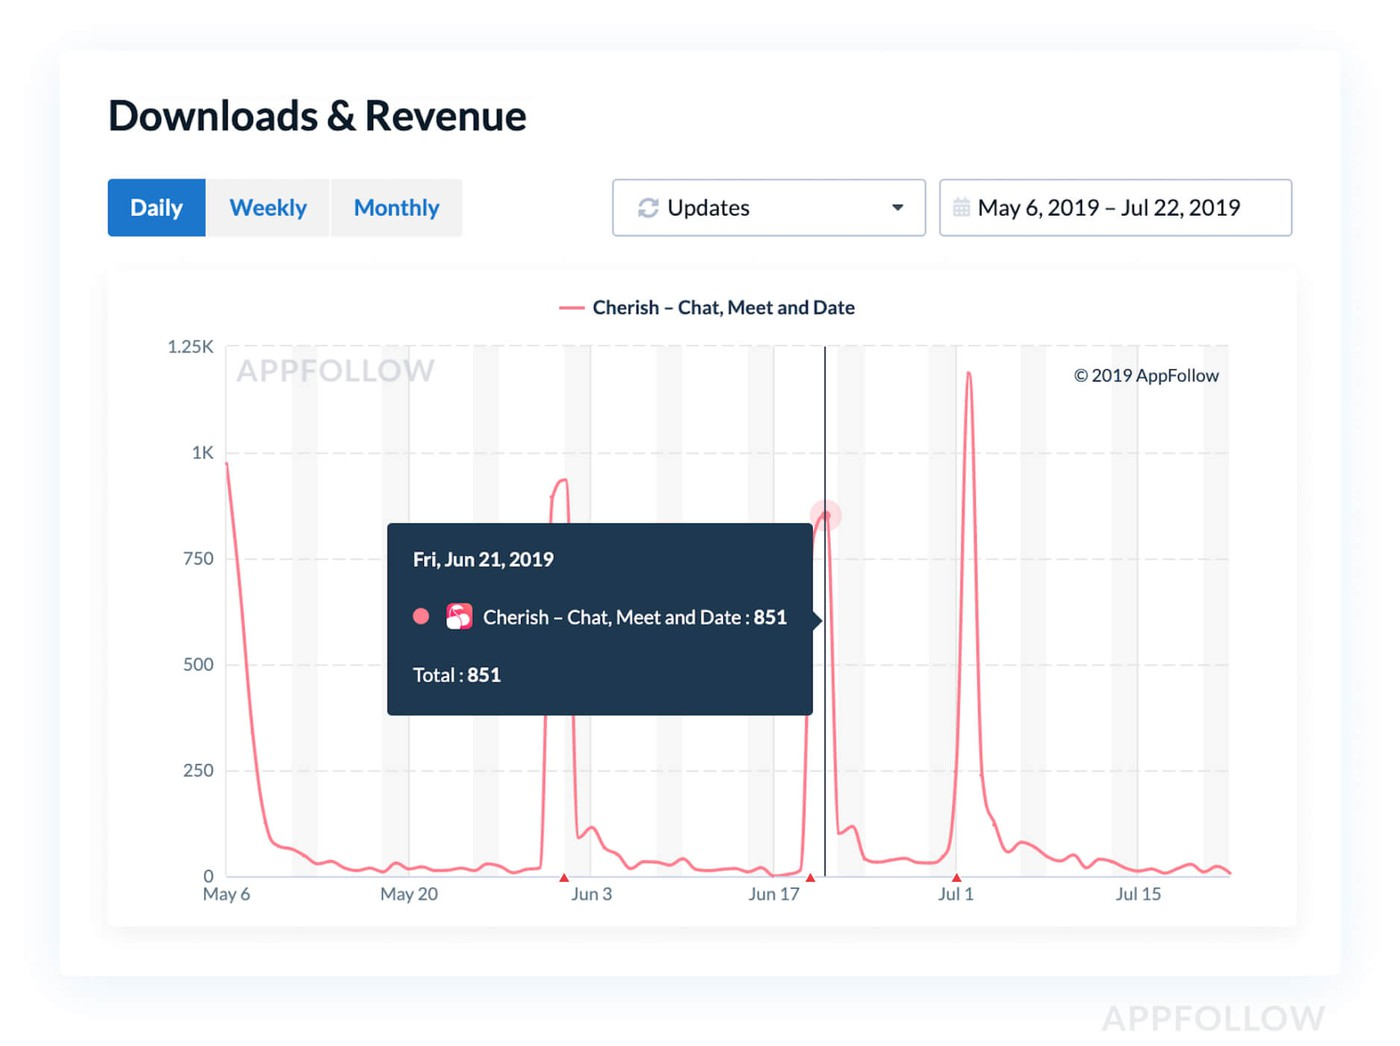 Downloads & Revenue metrics example